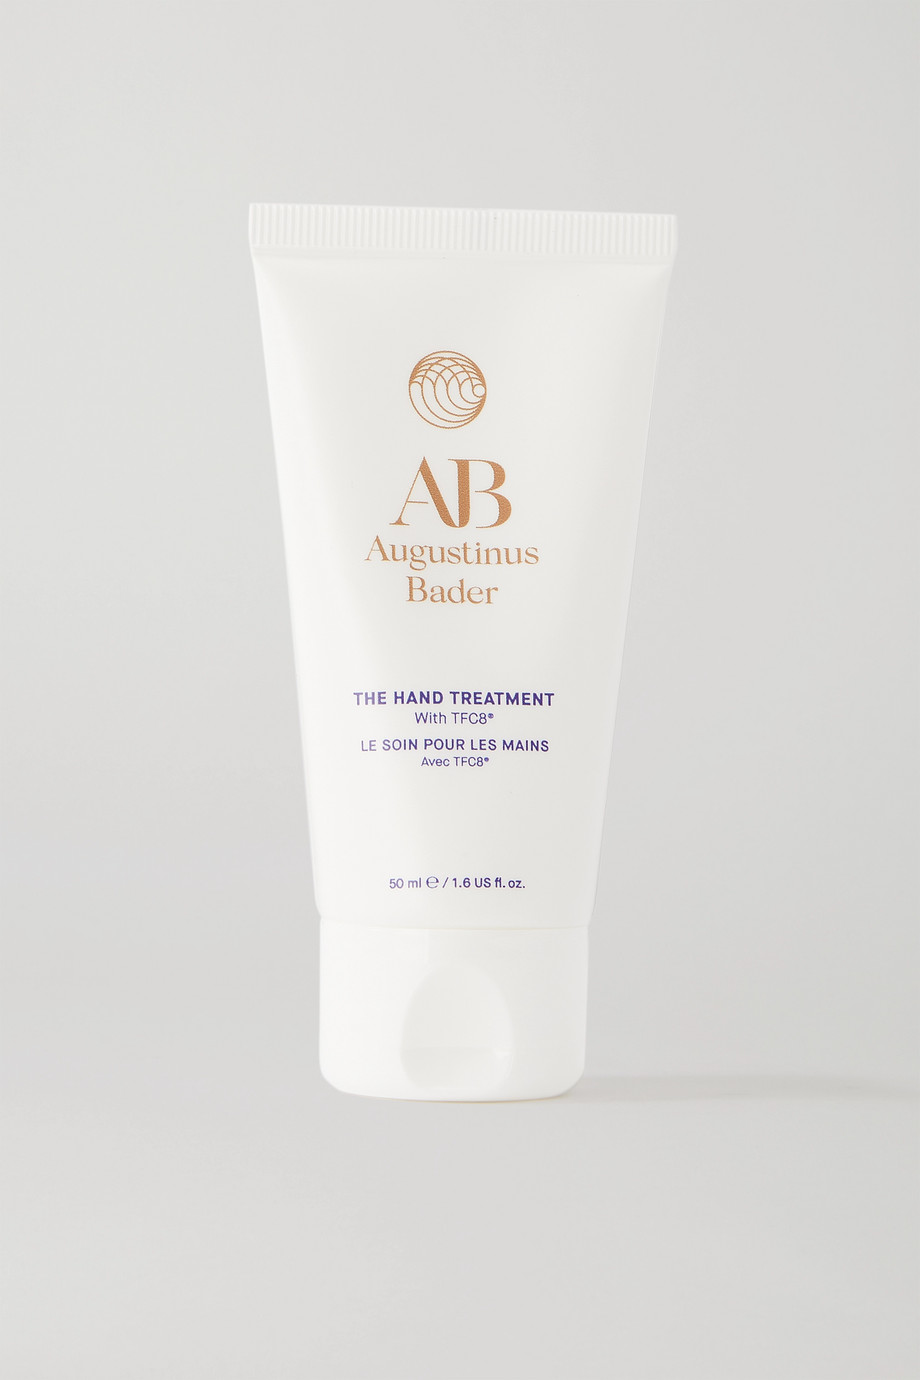 Augustinus Bader The Hand Treatment, 50 ml – Handcreme